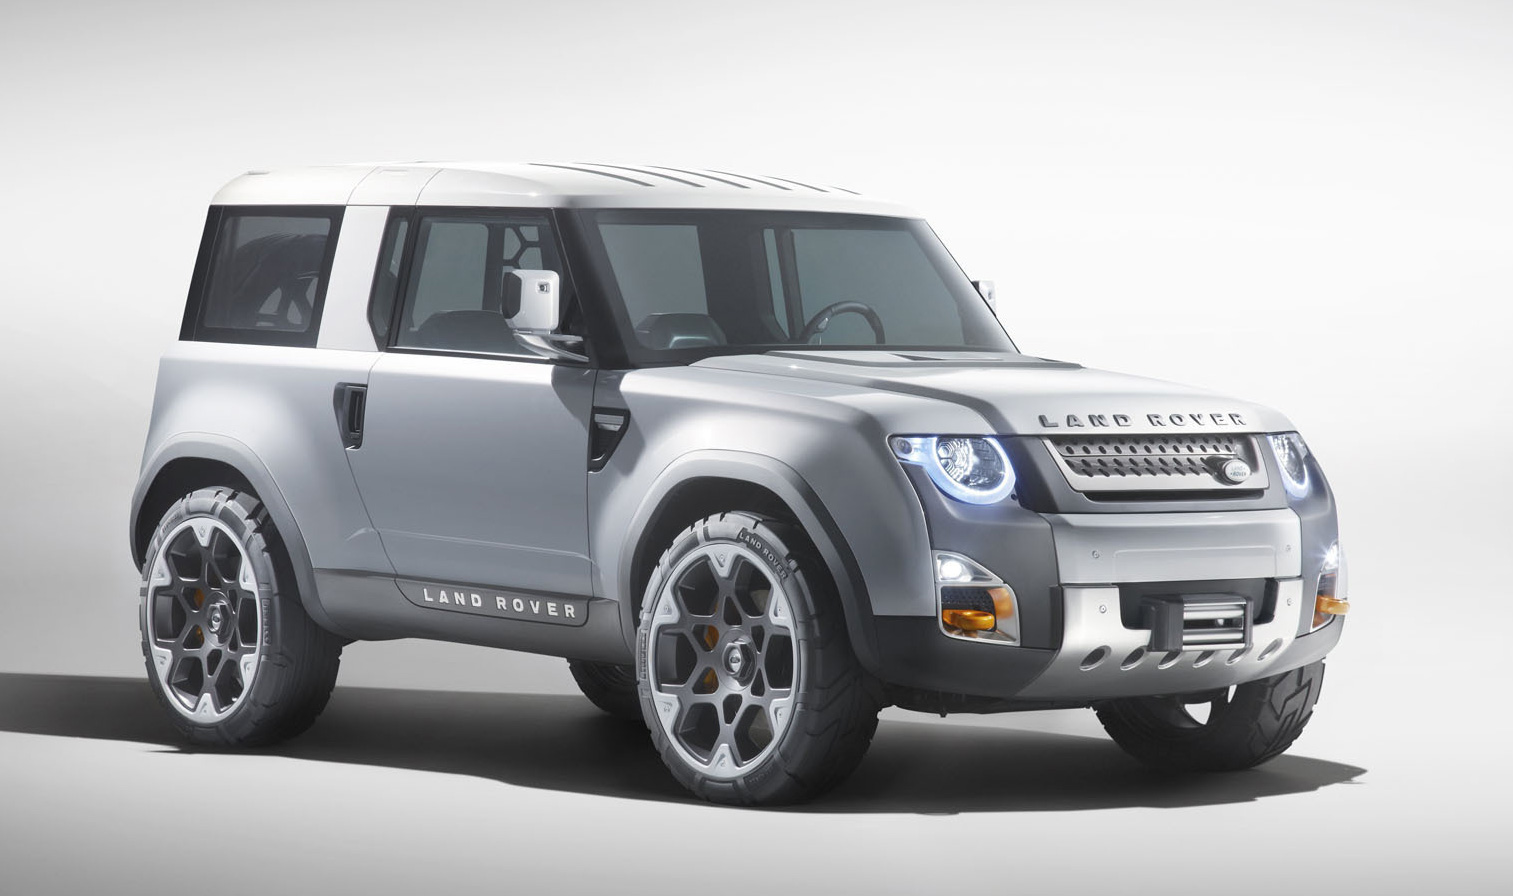 land rover dc100 Car Free Download Image Of